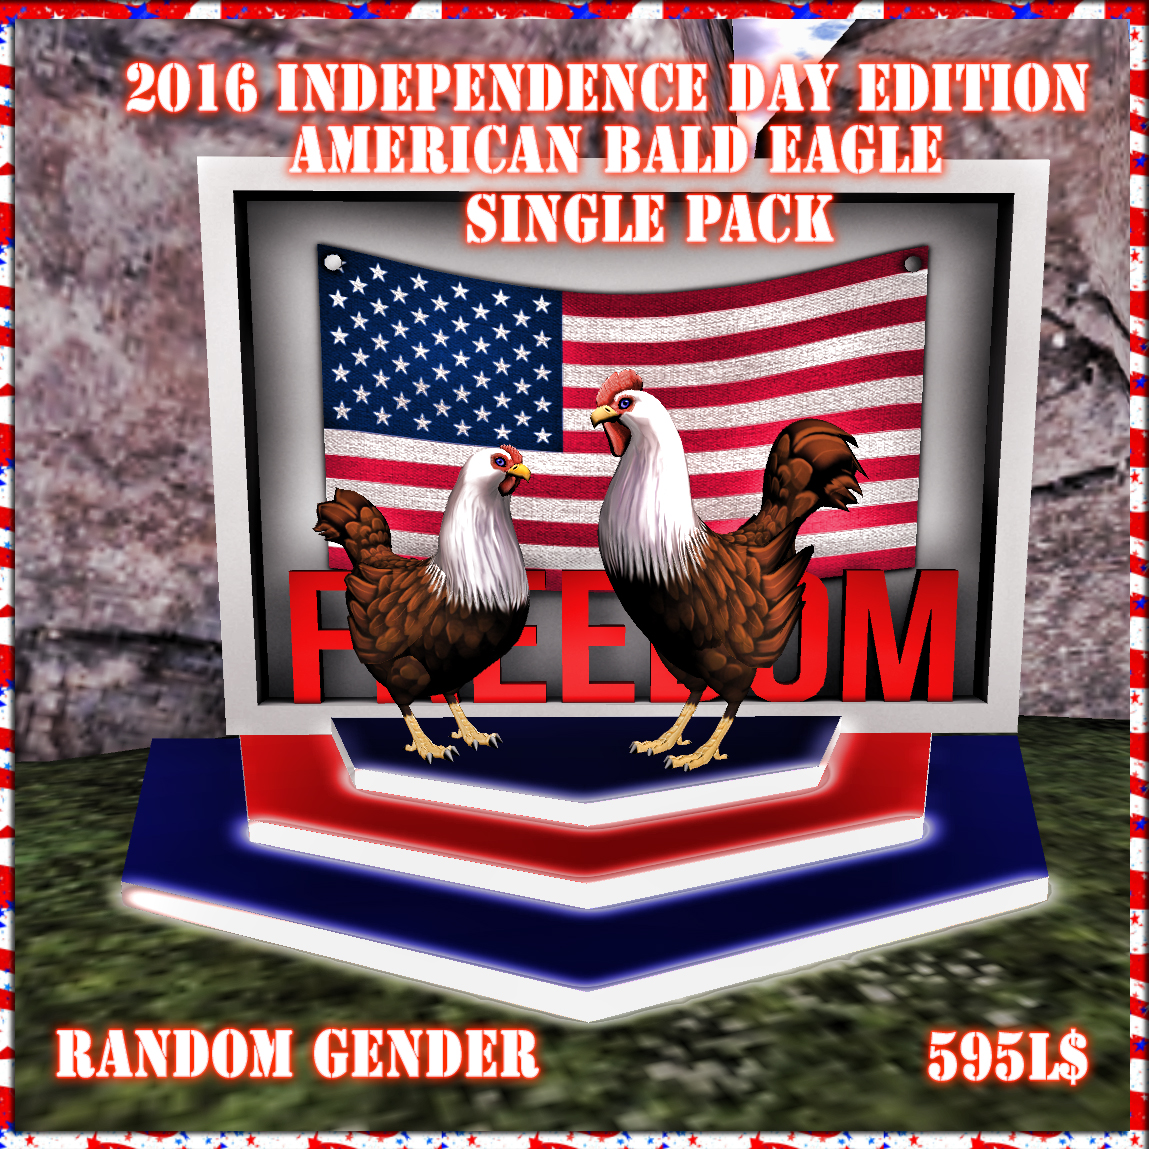 2016 Independence Day Edition American Bald EagleBB